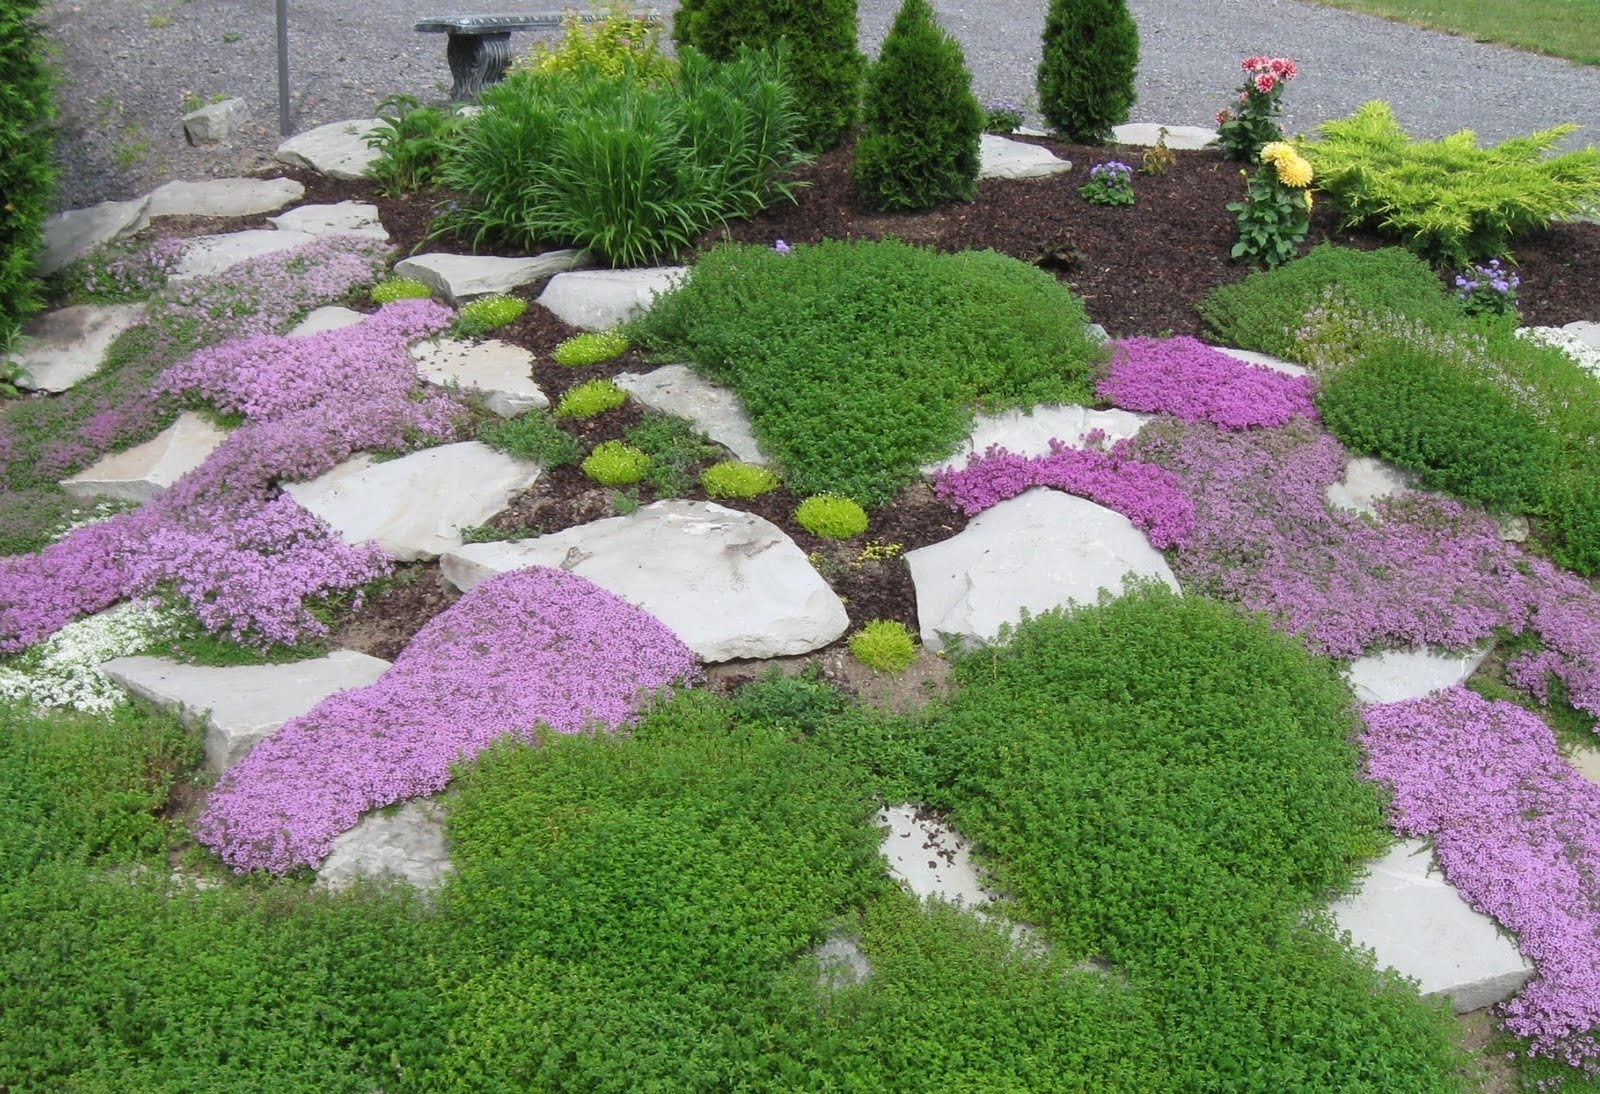 Image of: Decorative White Rocks For Landscaping Ideas Design Ideas Decors In White Rocks For Landscaping Amazing White Rocks For Landscaping